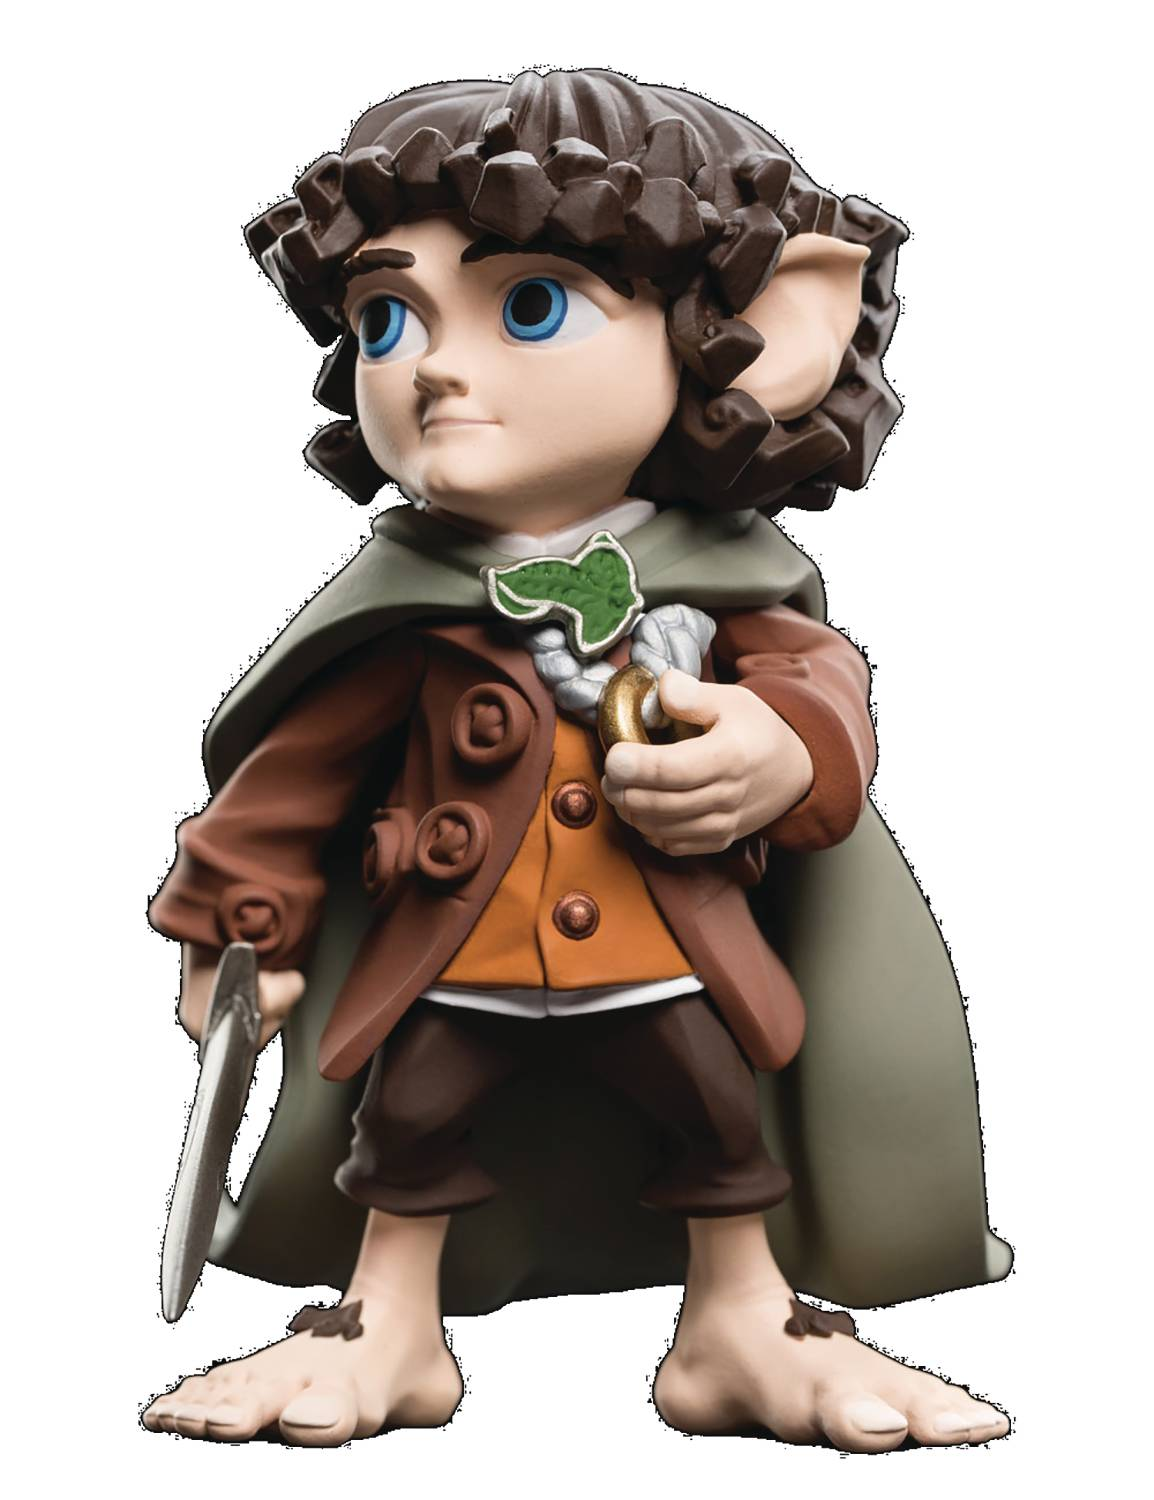 MINI EPICS LOTR FRODO BAGGINS VINYL FIG